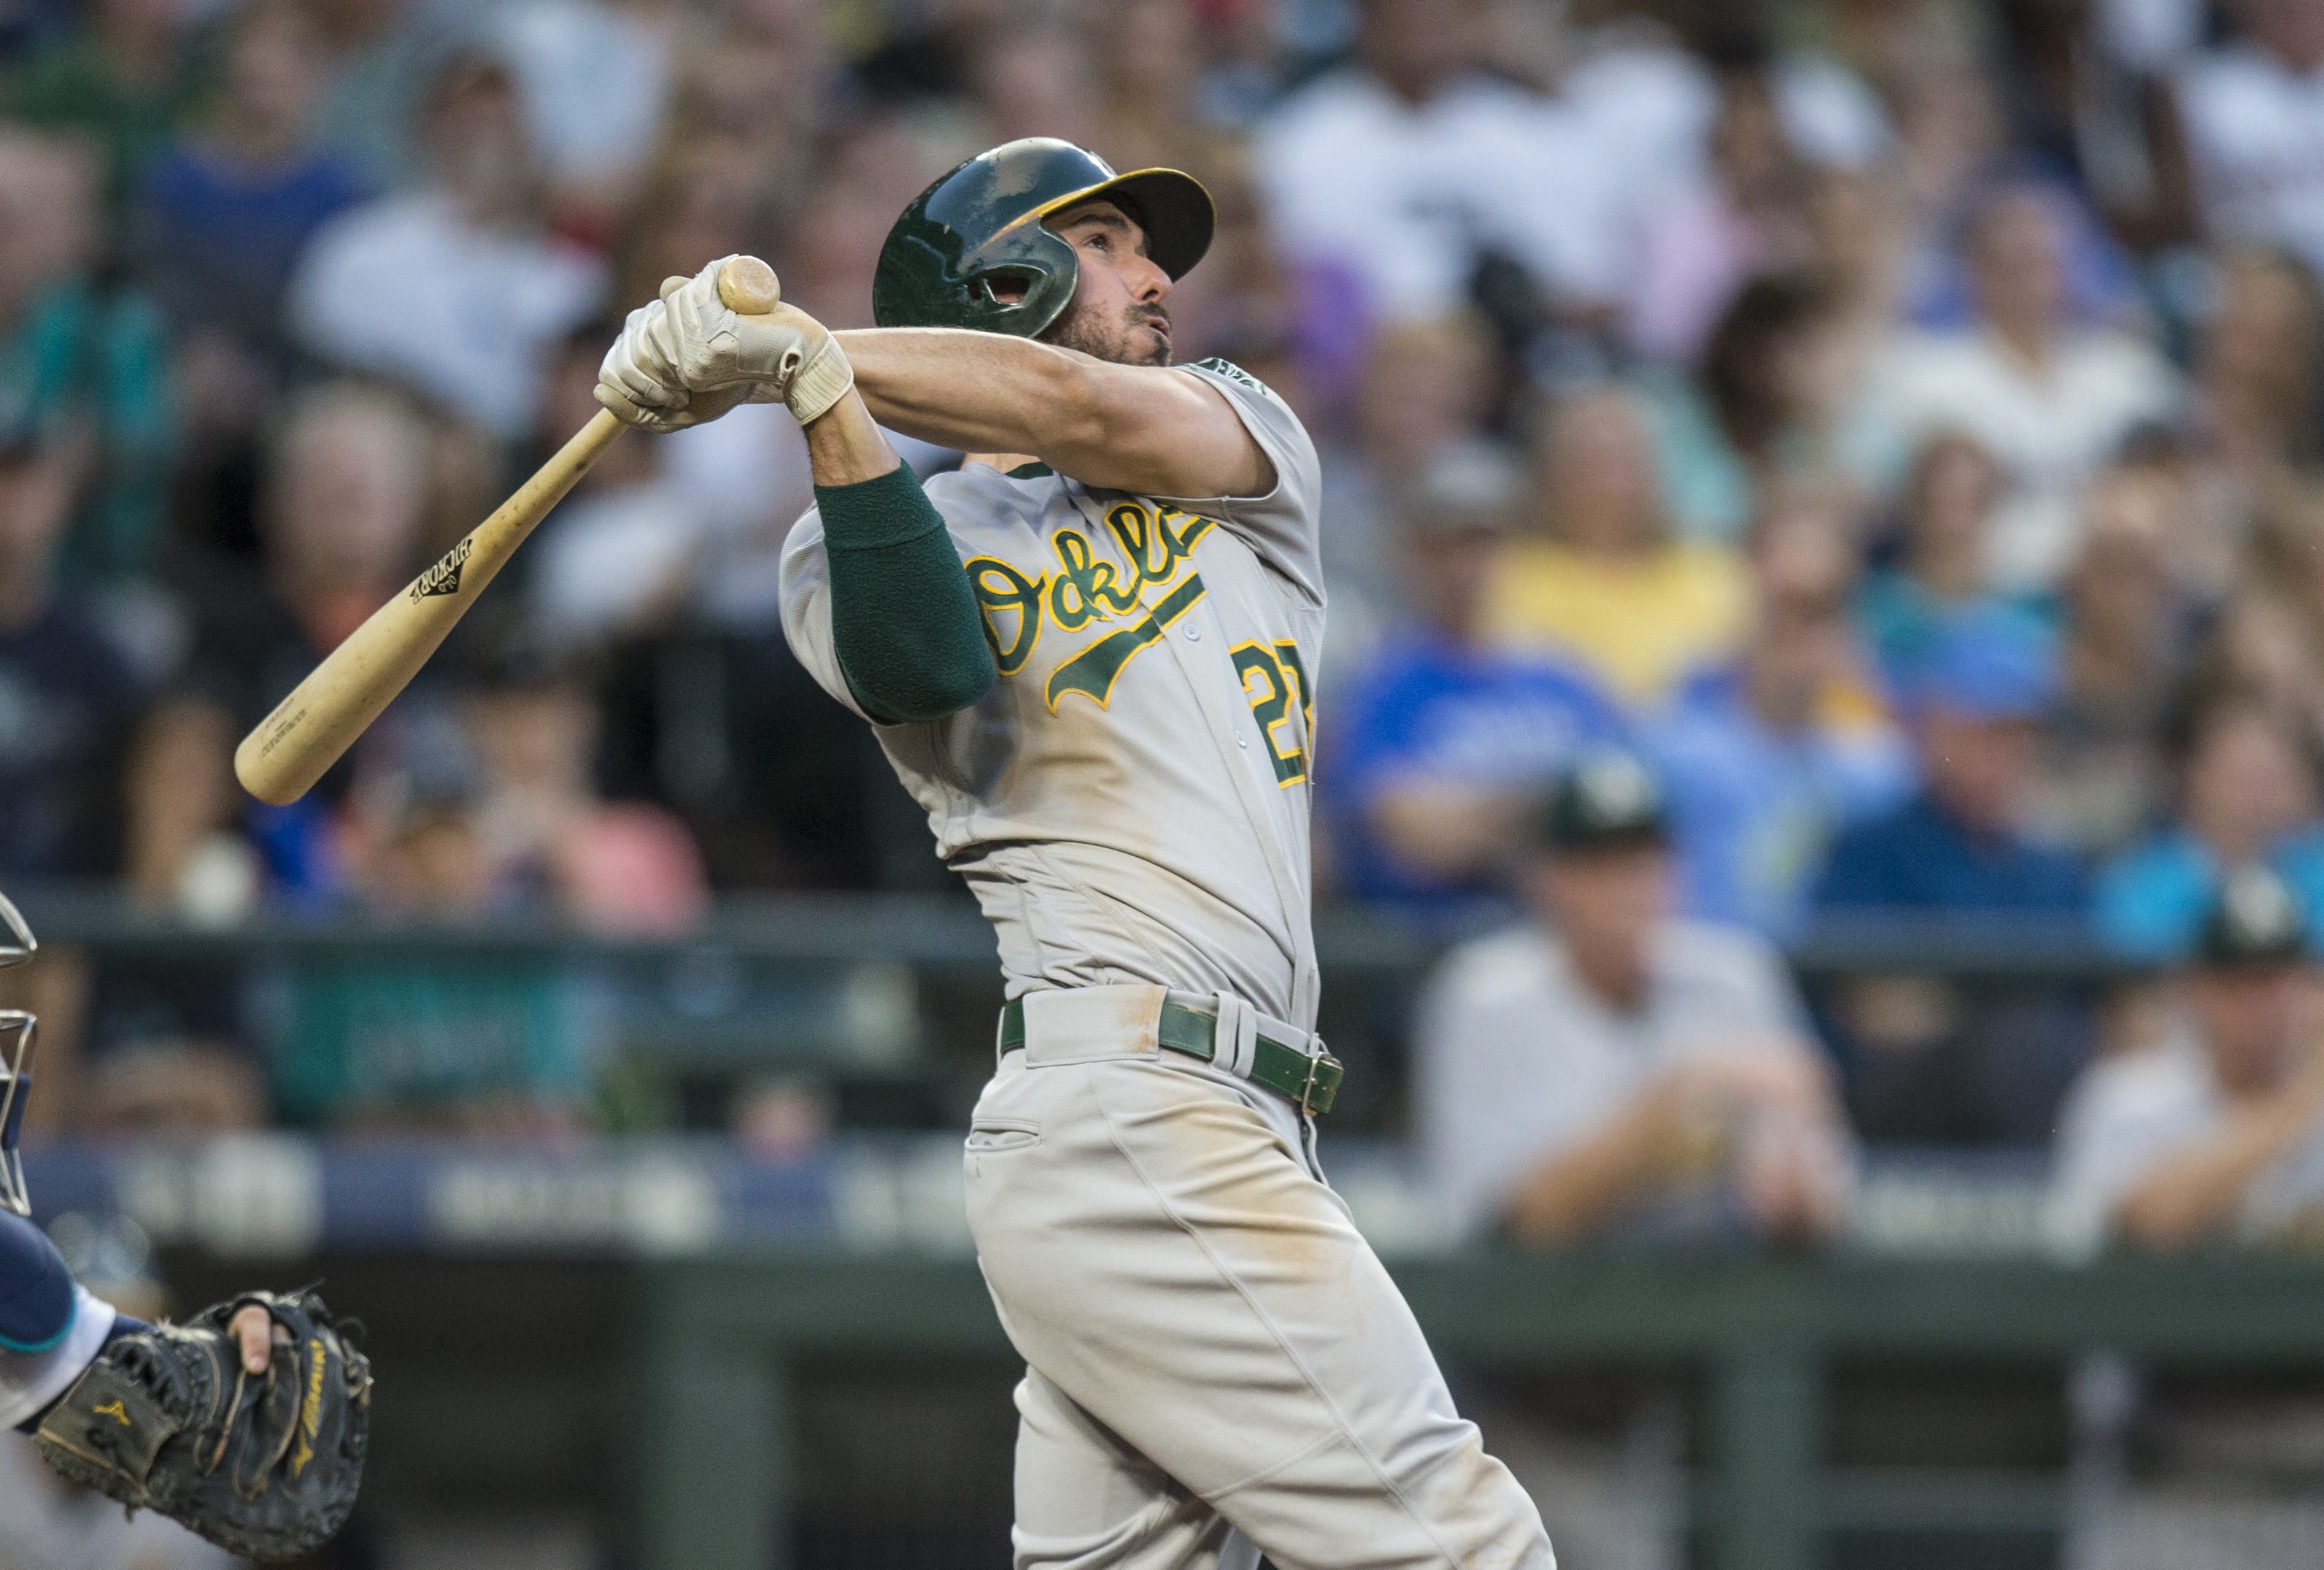 Oakland Athletics' Matt Joyce watches his three-run home run off Seattle Mariners relief pitcher Casey Lawrence during the fourth inning of a baseball game Saturday, Sept. 2, 2017, in Seattle. (AP Photo/Stephen Brashear)